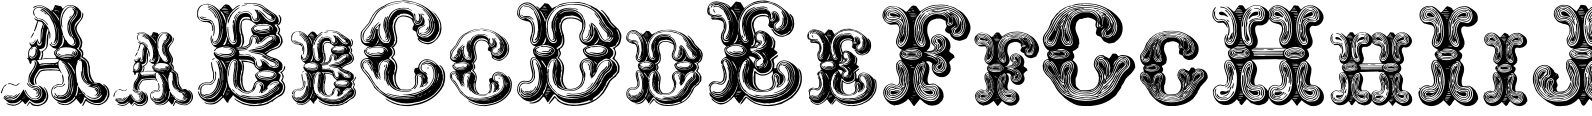 Grotesque and Arabesque Font